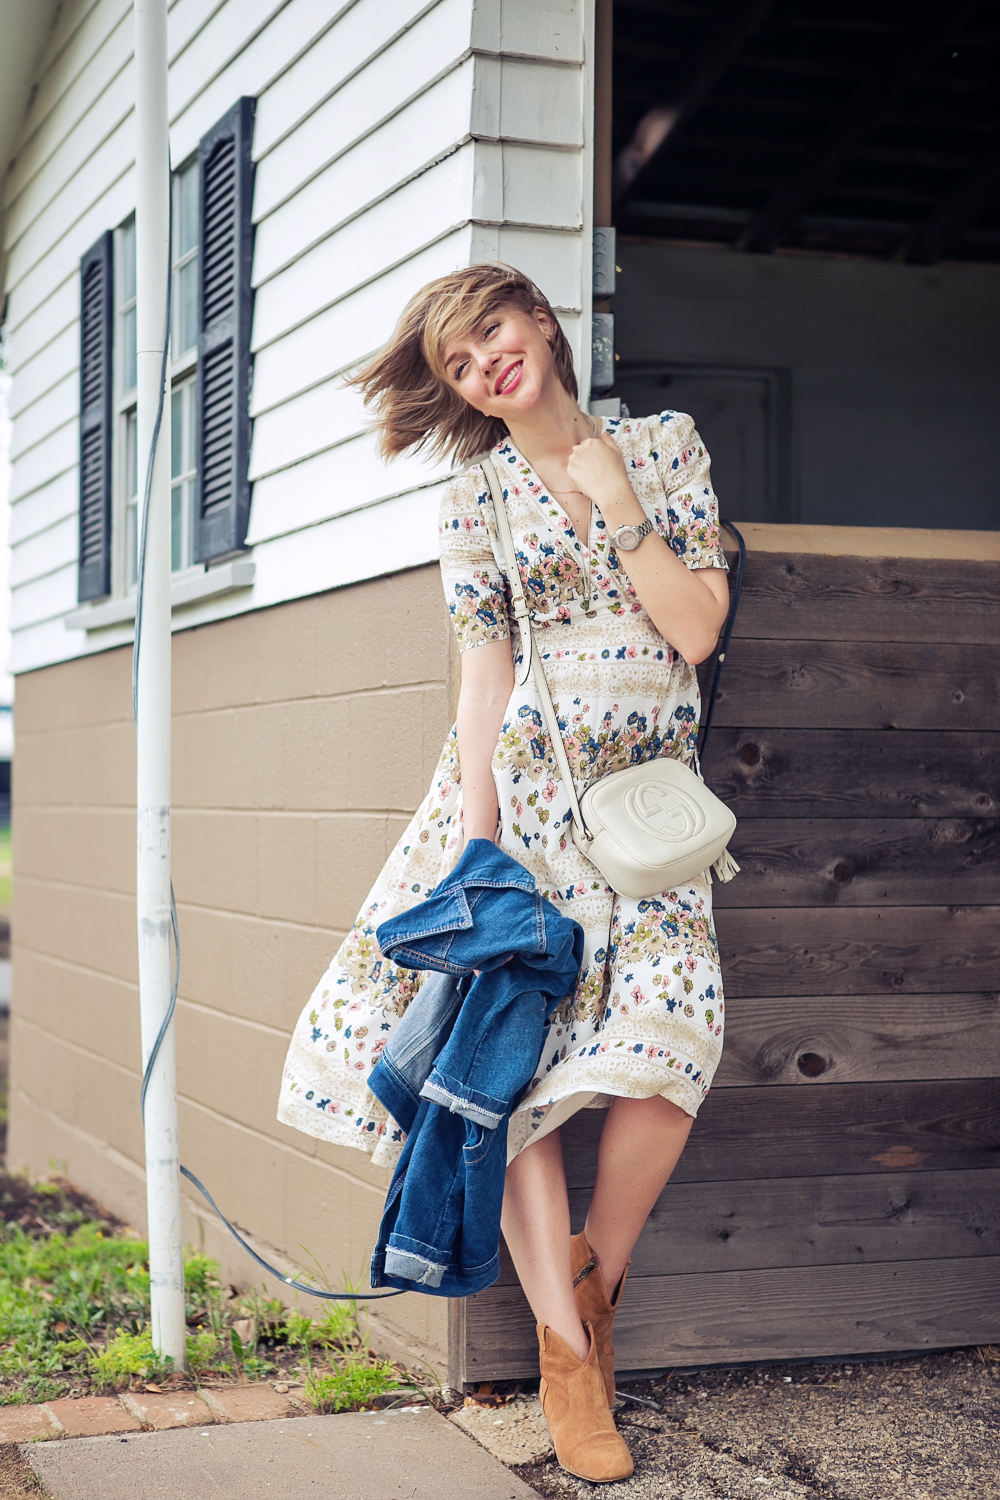 darya kamalova russian italian fashion blogger from thecablook in dallas on ranch in denim jacket and floral dress with ash booties and gucci disco bag-47 copy